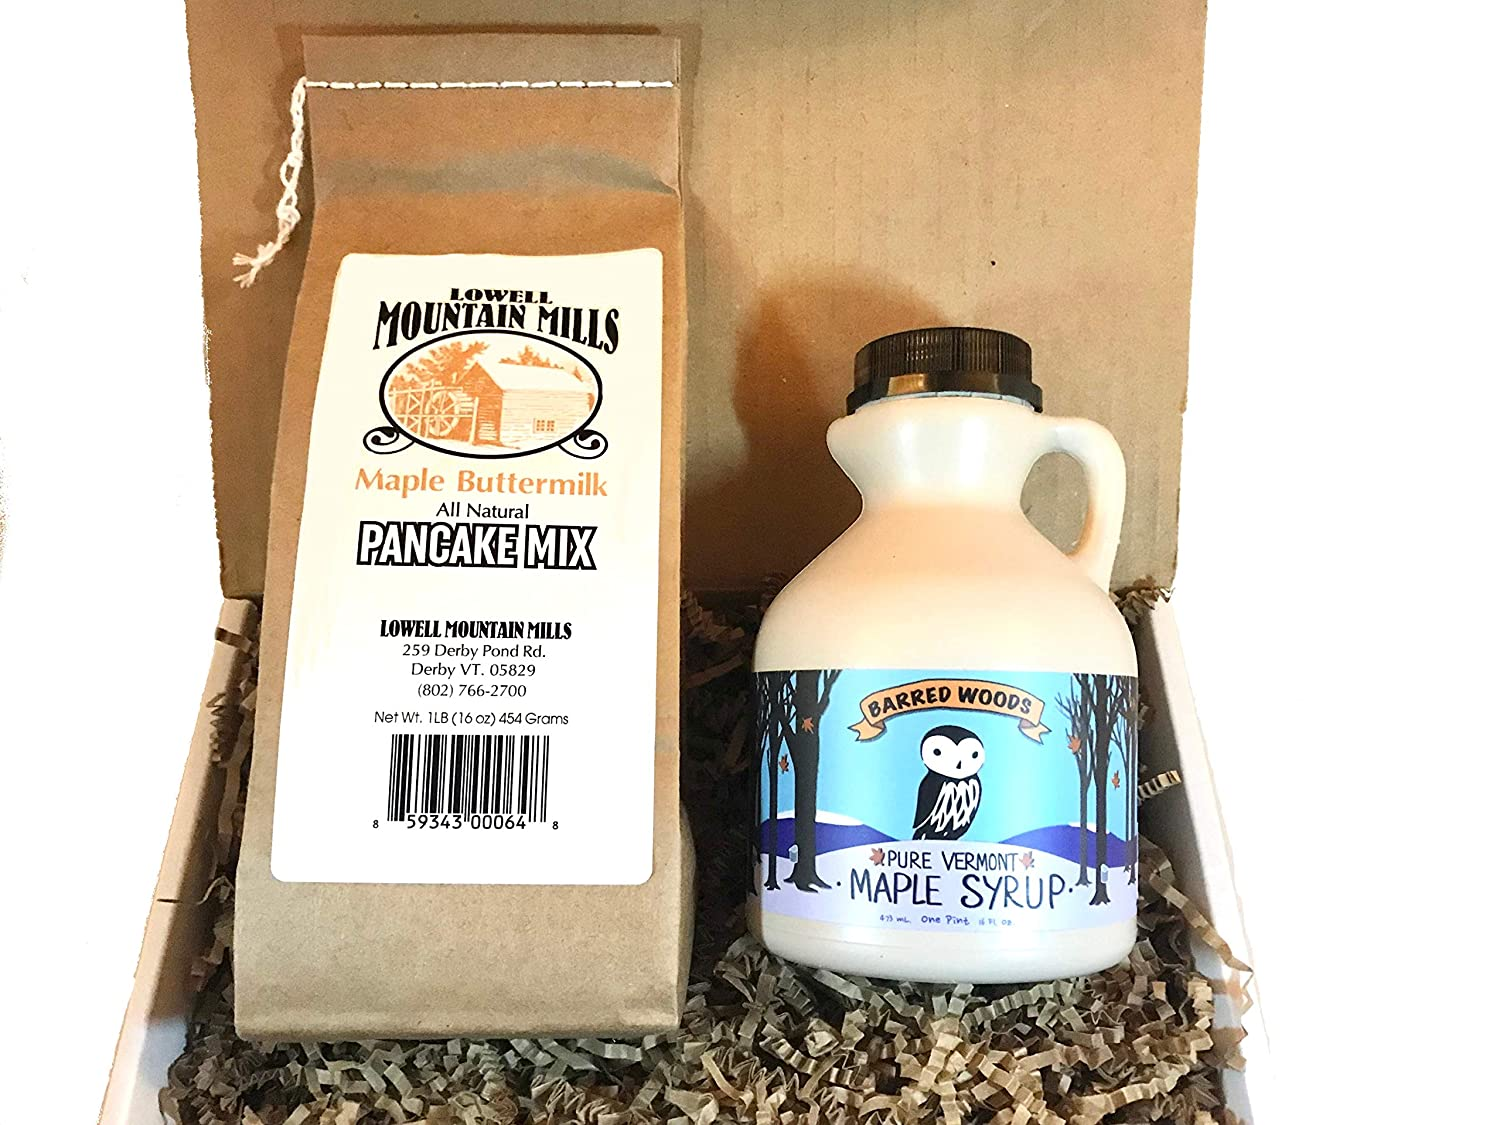 Vermont Maple Syrup and Pancake Mix Gift Box - From Barred Woods Maple Products (Amber Rich)